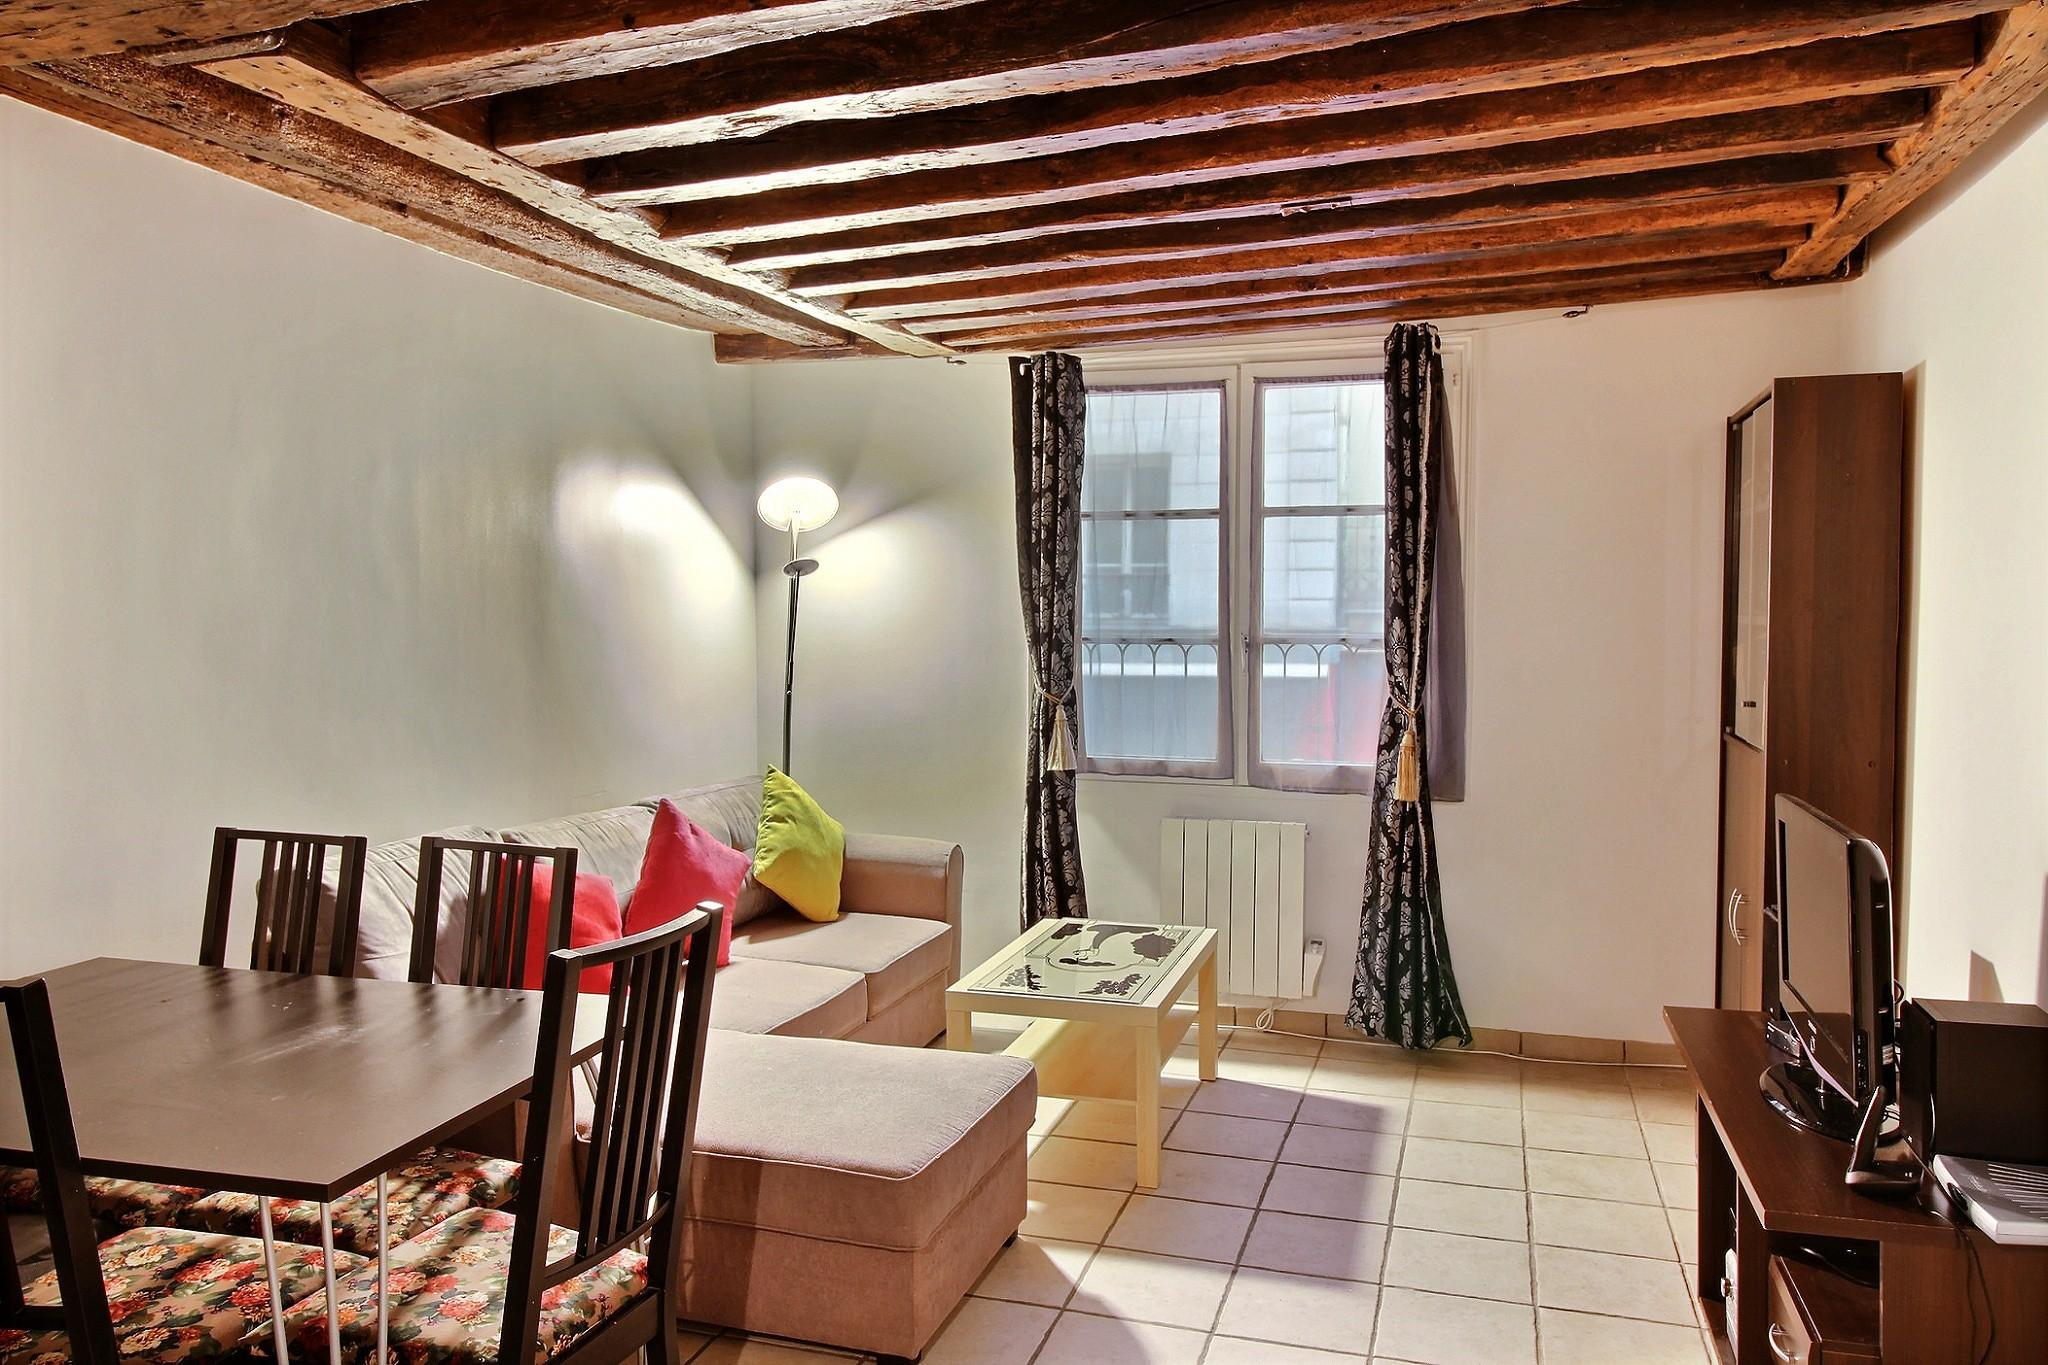 103232 - Comfortable apartment for 4 people near the Marais